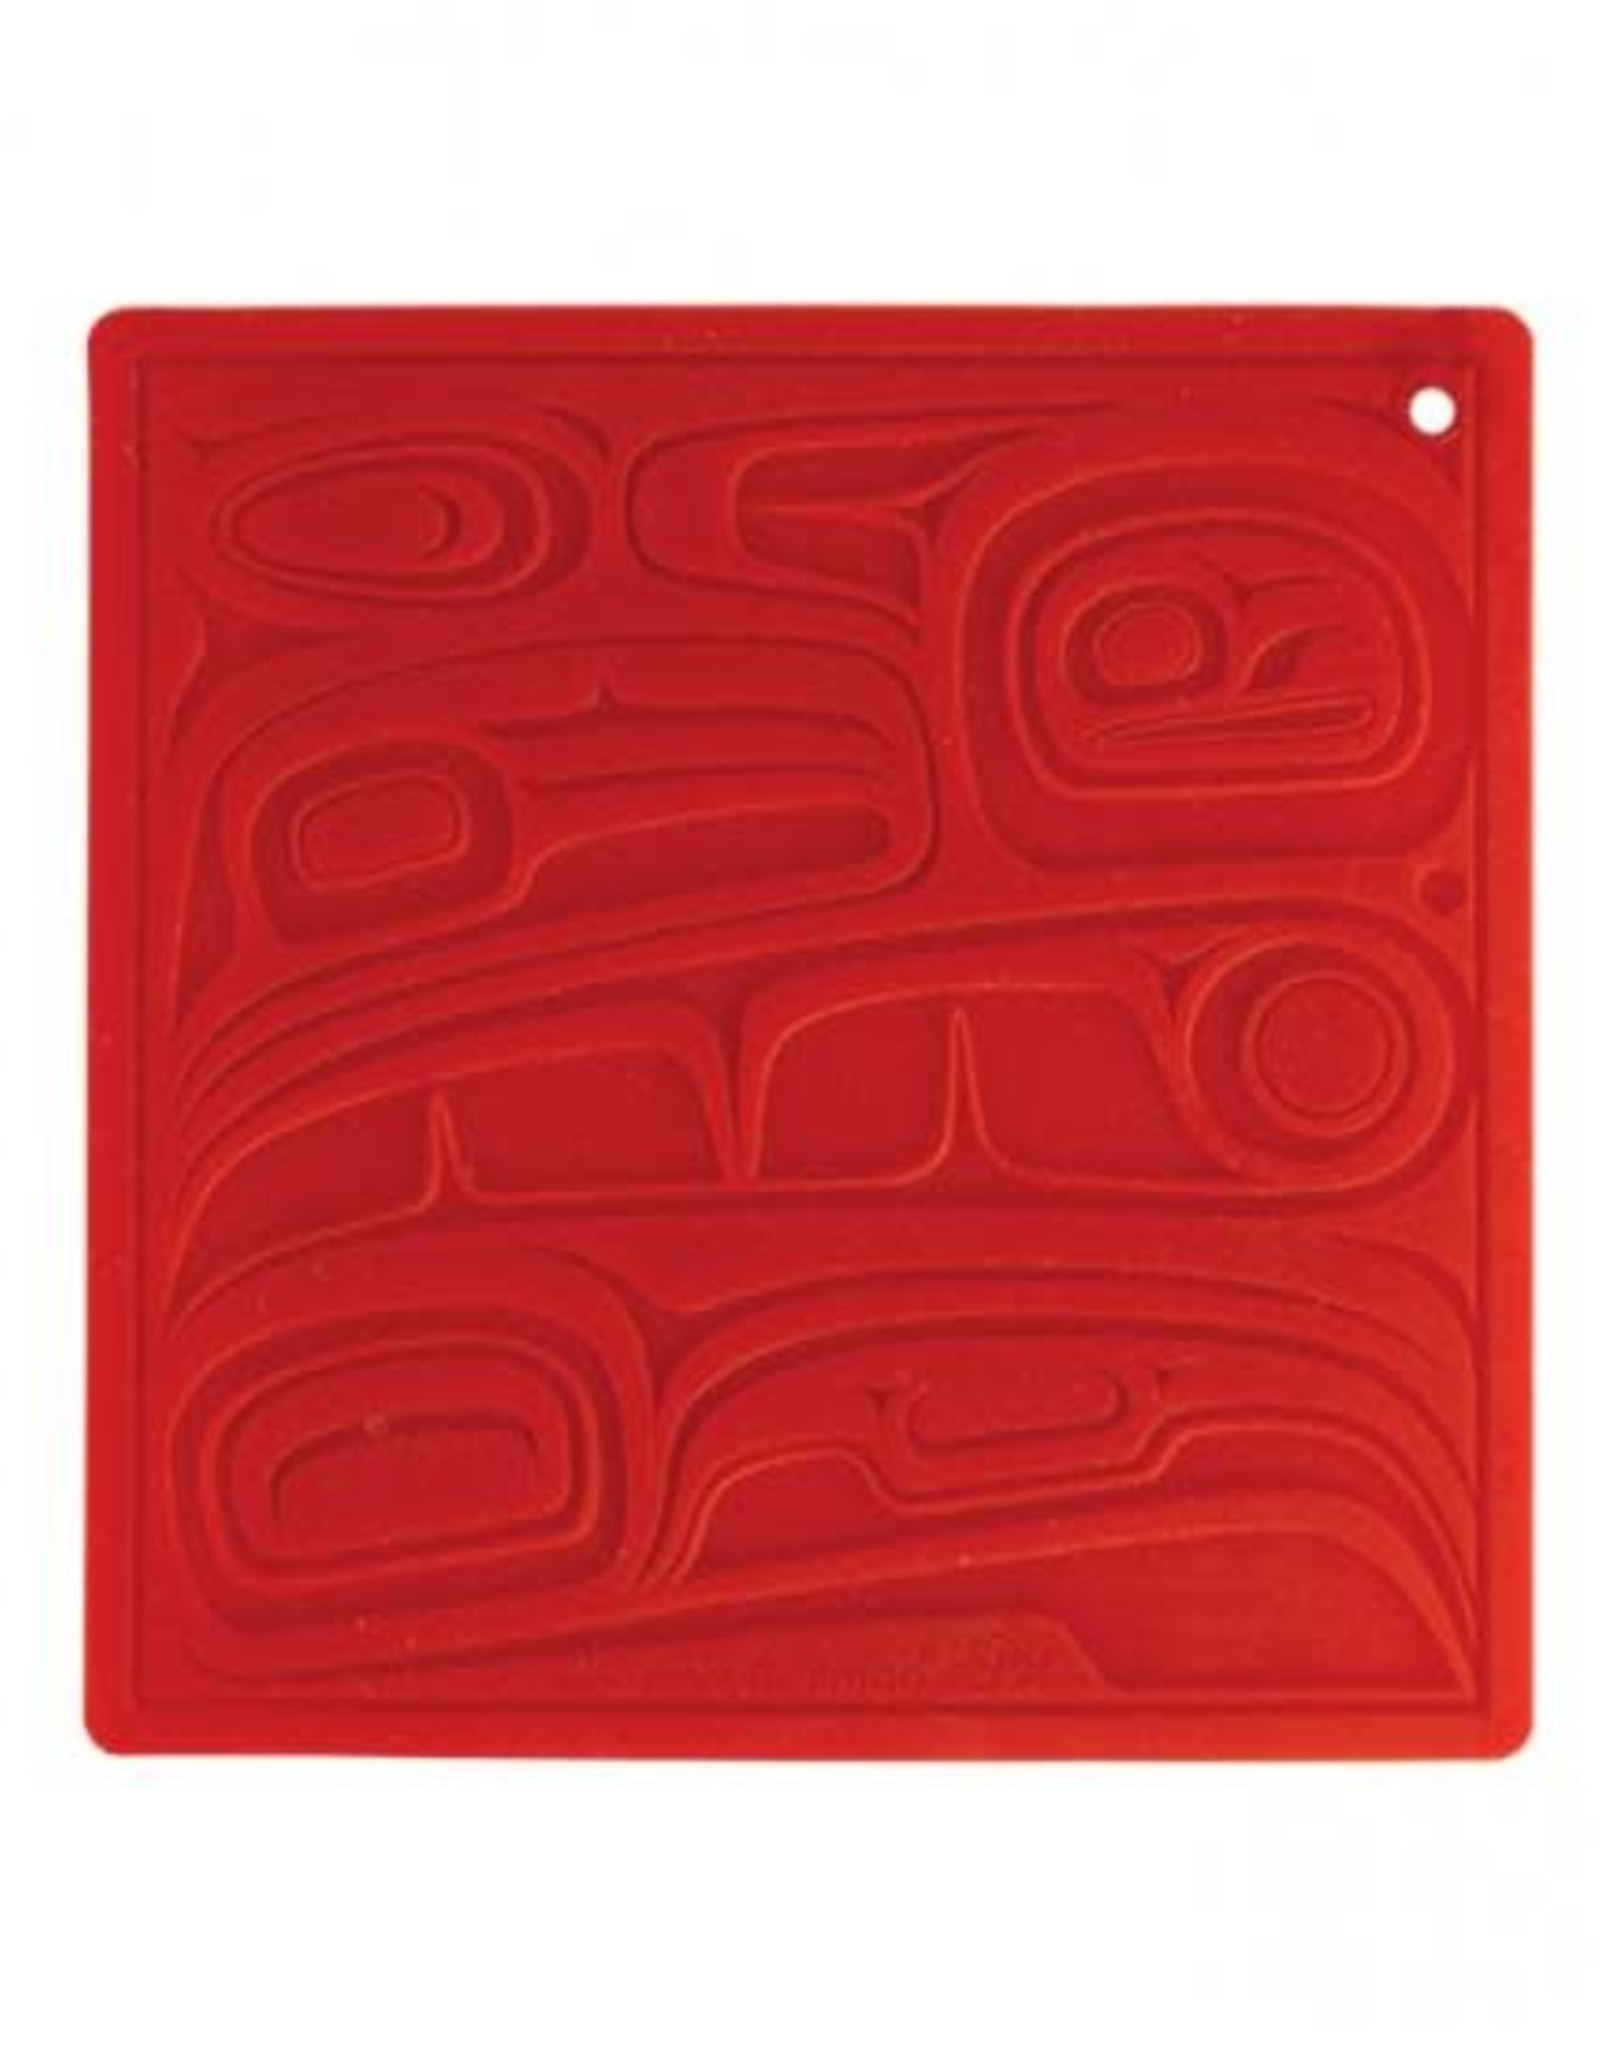 Silicone Trivet- Raven design by Kelly Robinson